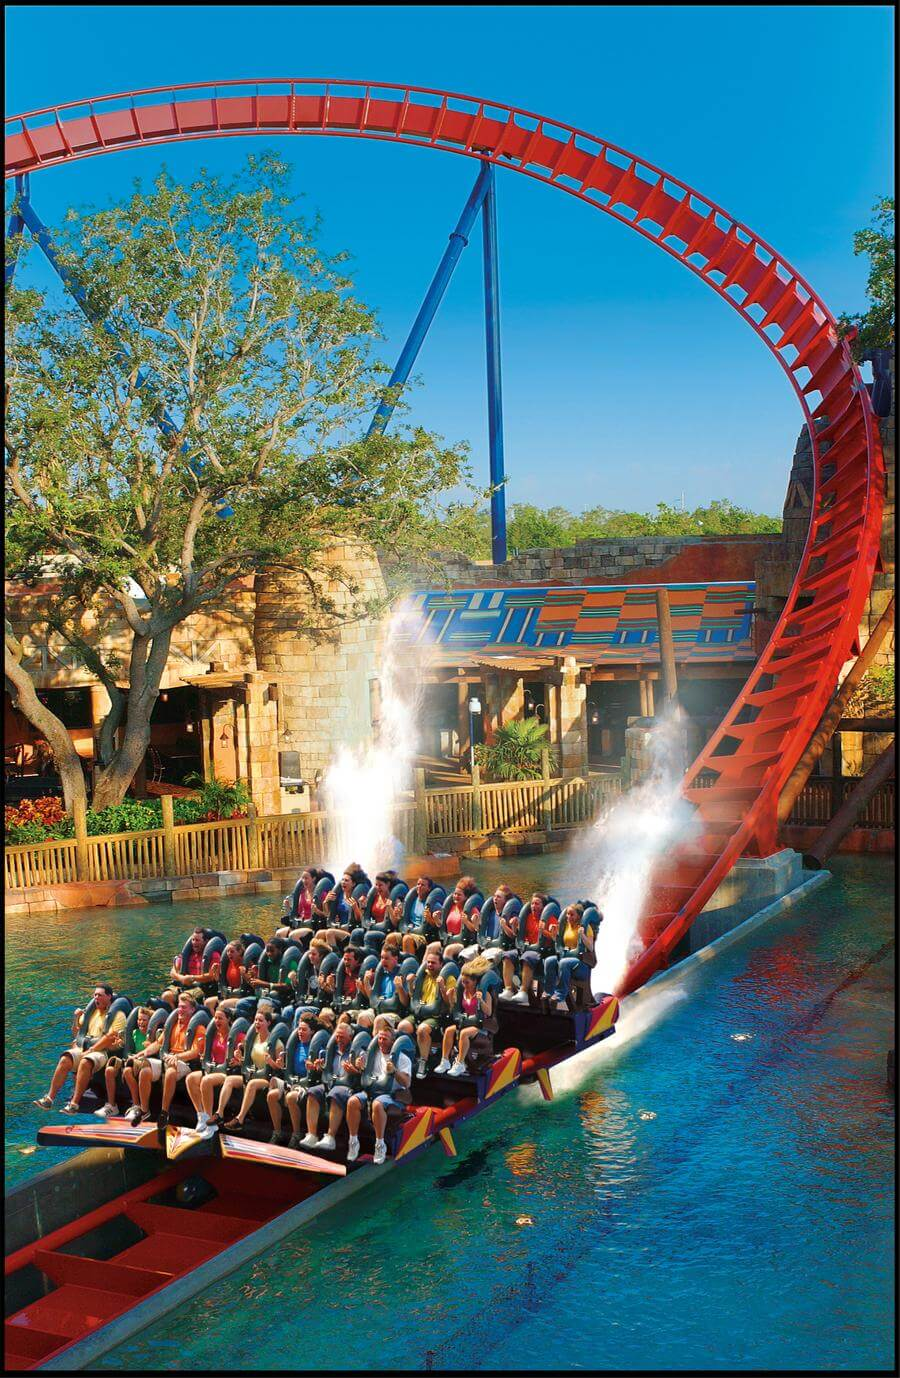 Sheikra busch gardens tampa discount tickets How far is busch gardens from orlando